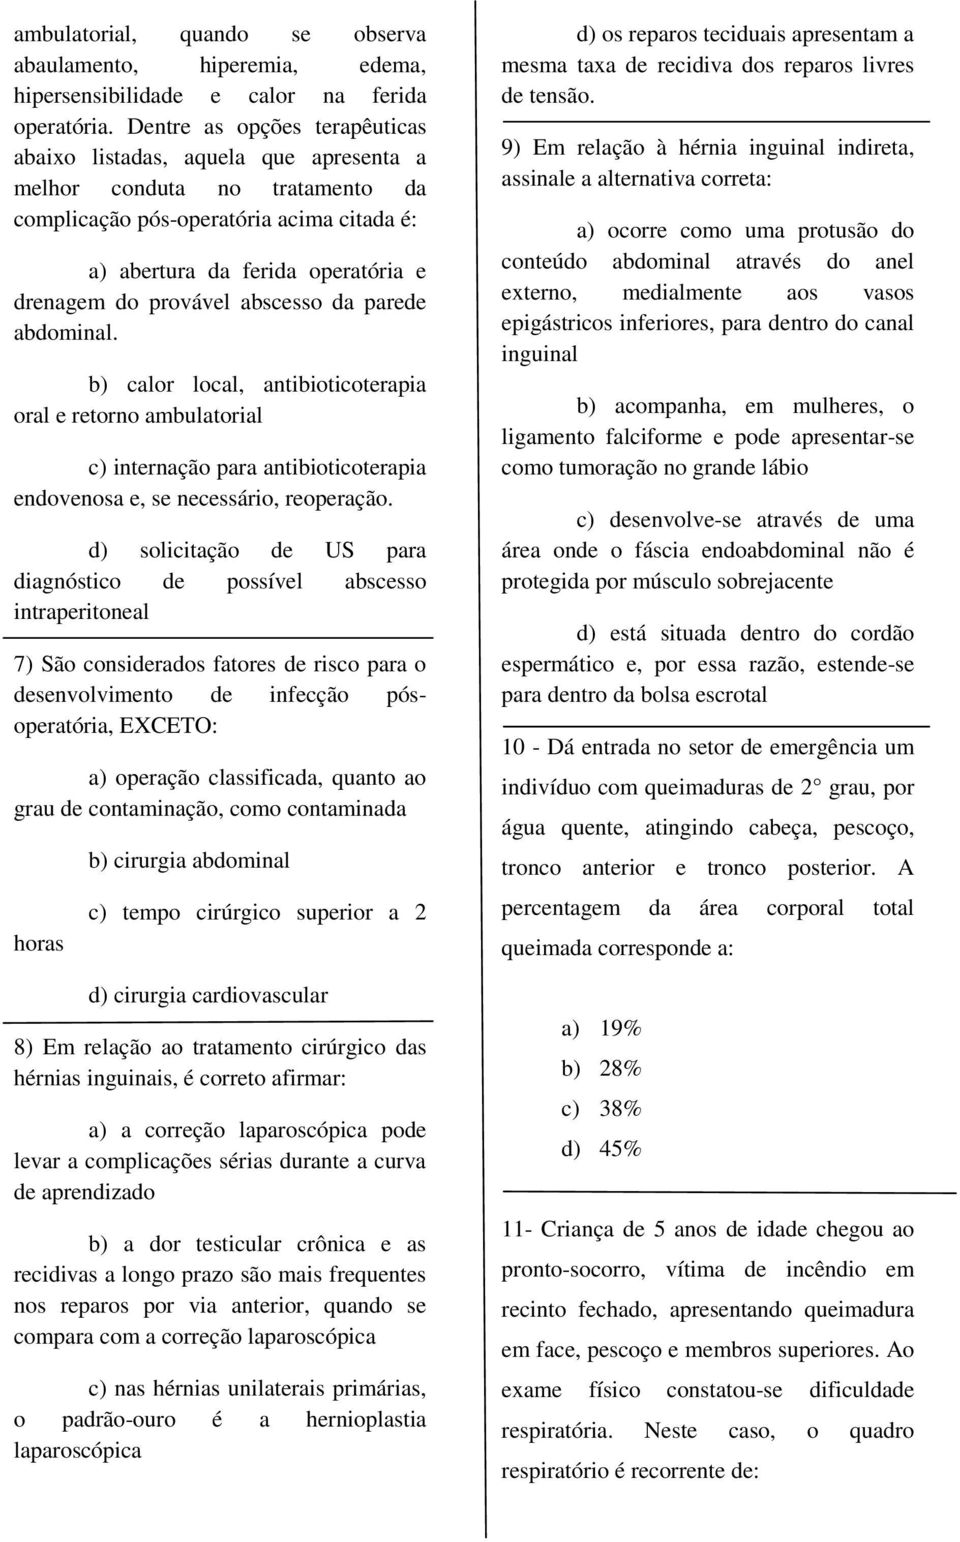 provável abscesso da parede abdominal. b) calor local, antibioticoterapia oral e retorno ambulatorial c) internação para antibioticoterapia endovenosa e, se necessário, reoperação.